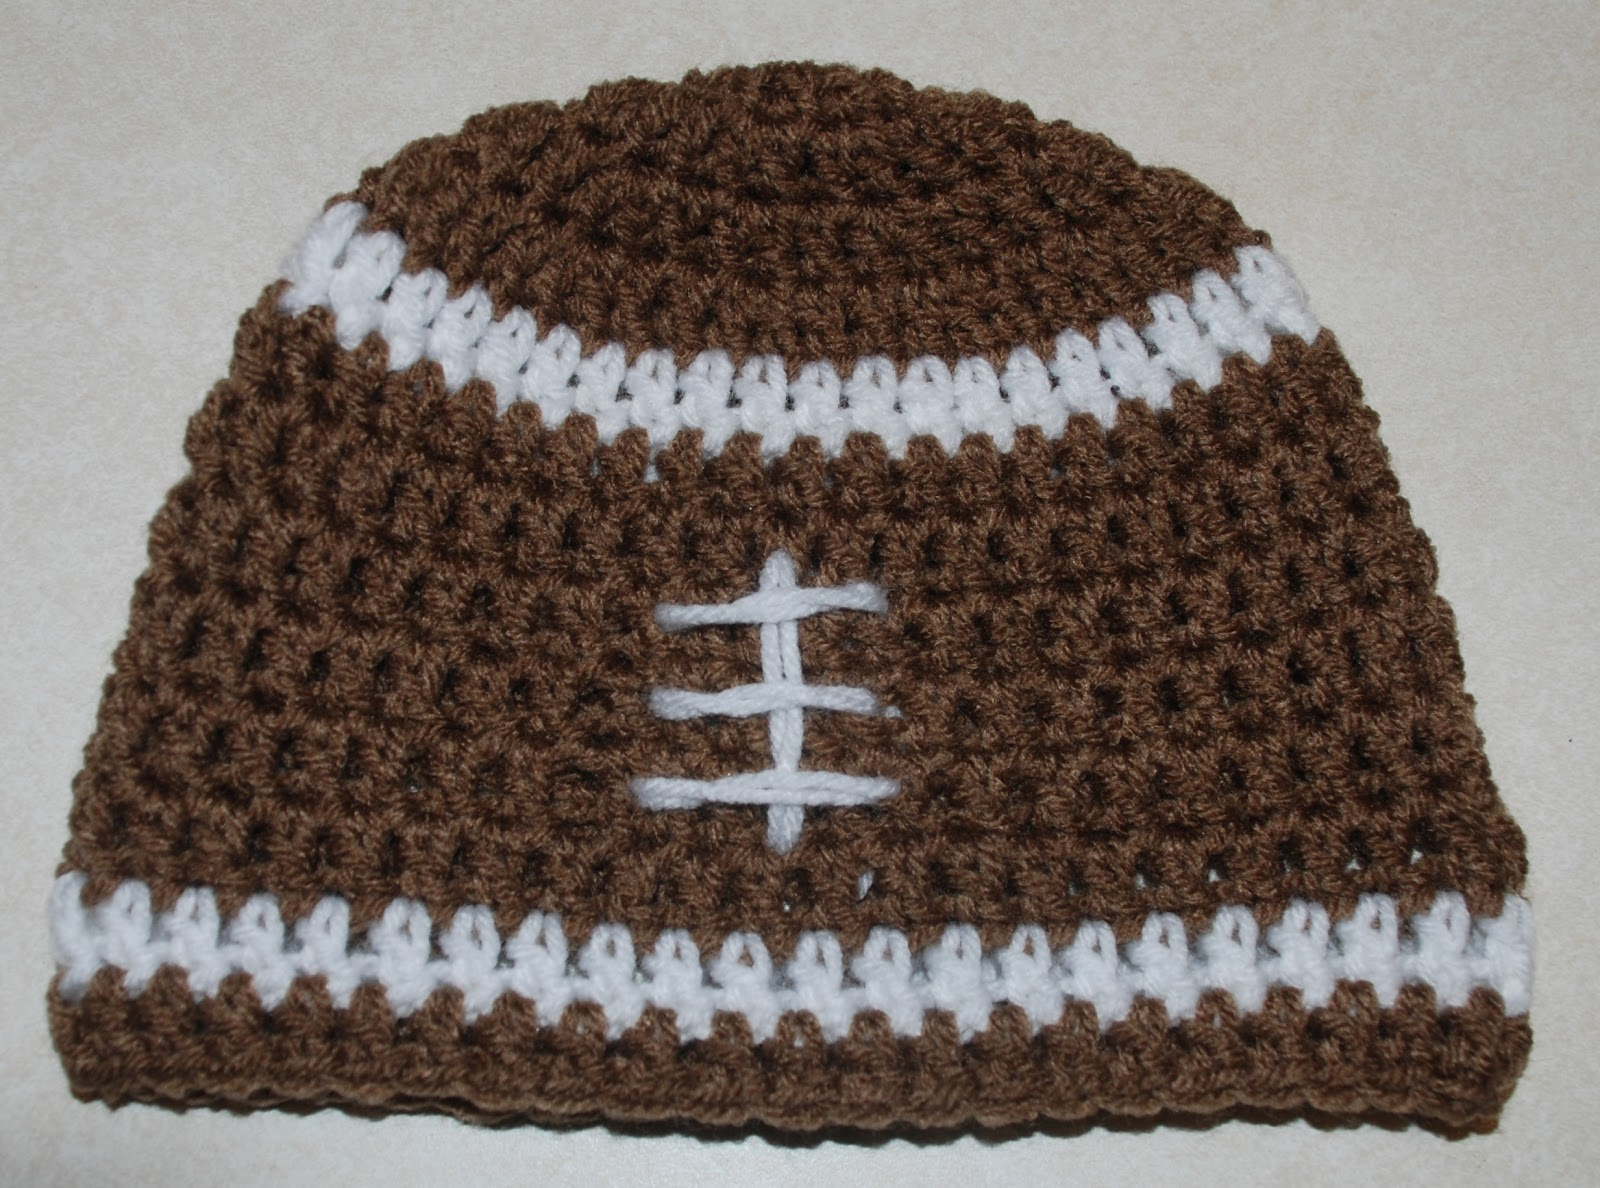 Crochet Pattern Baby Hat Free : Amys Crochet Creative Creations: Crochet Football Hat ...